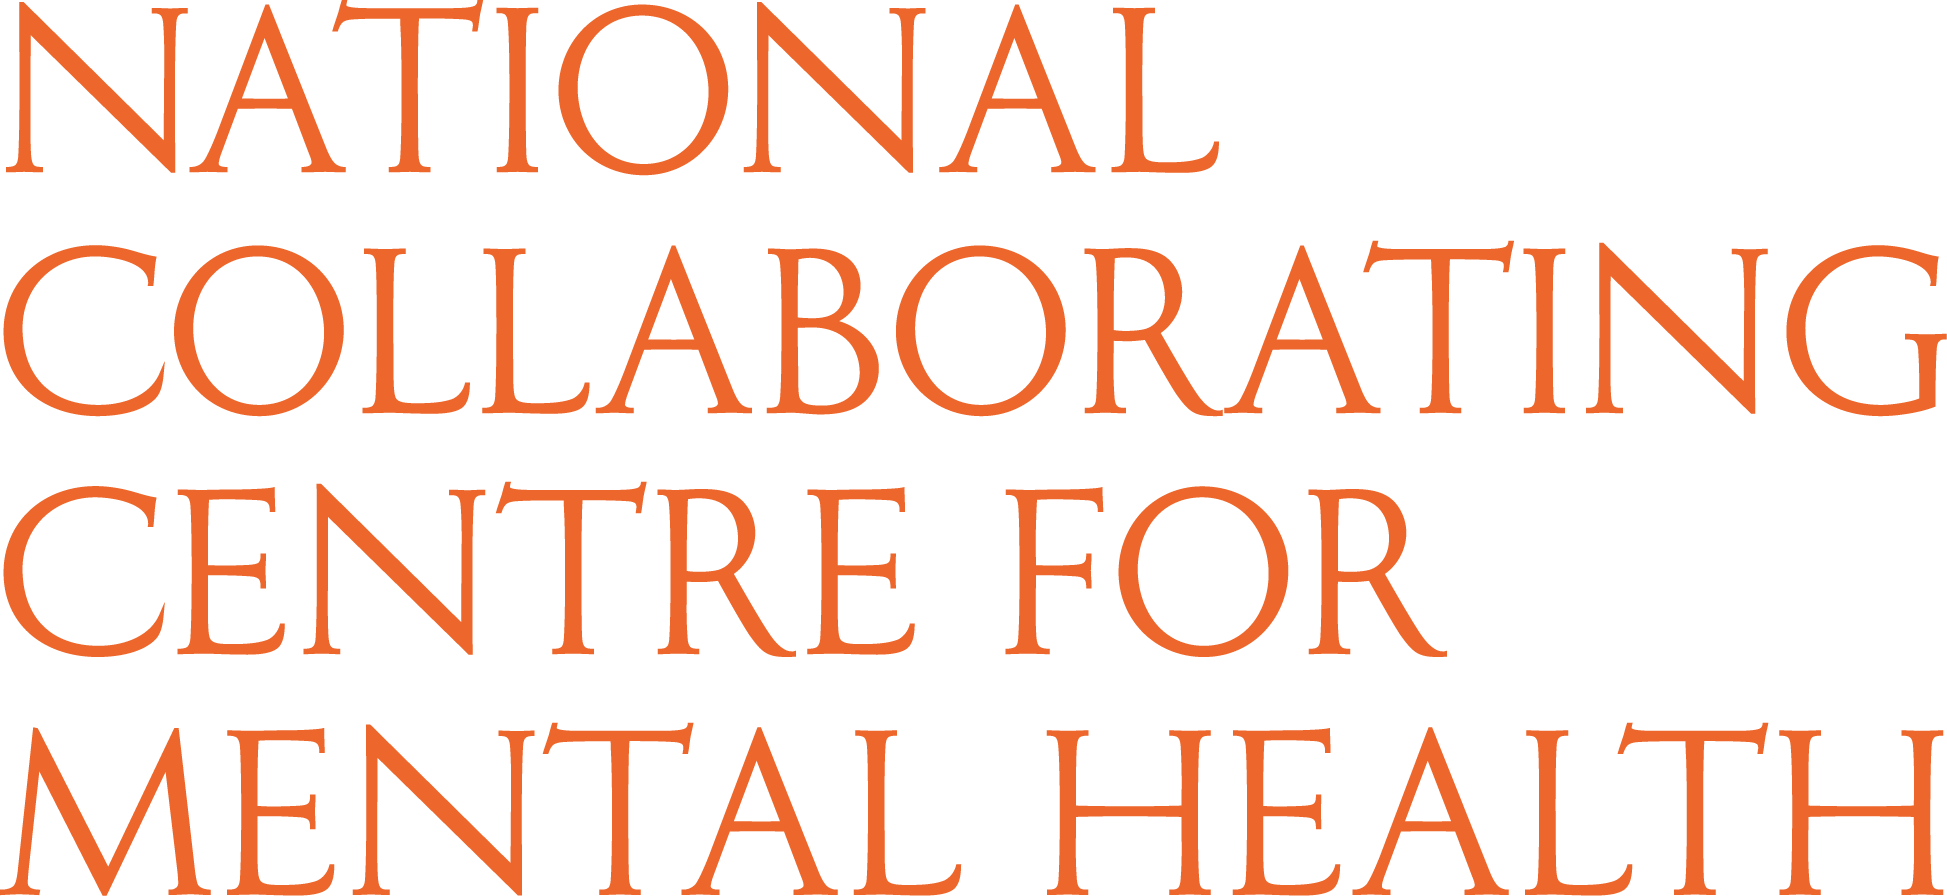 National Collaborating Centre for Mental Health - Wikipedia